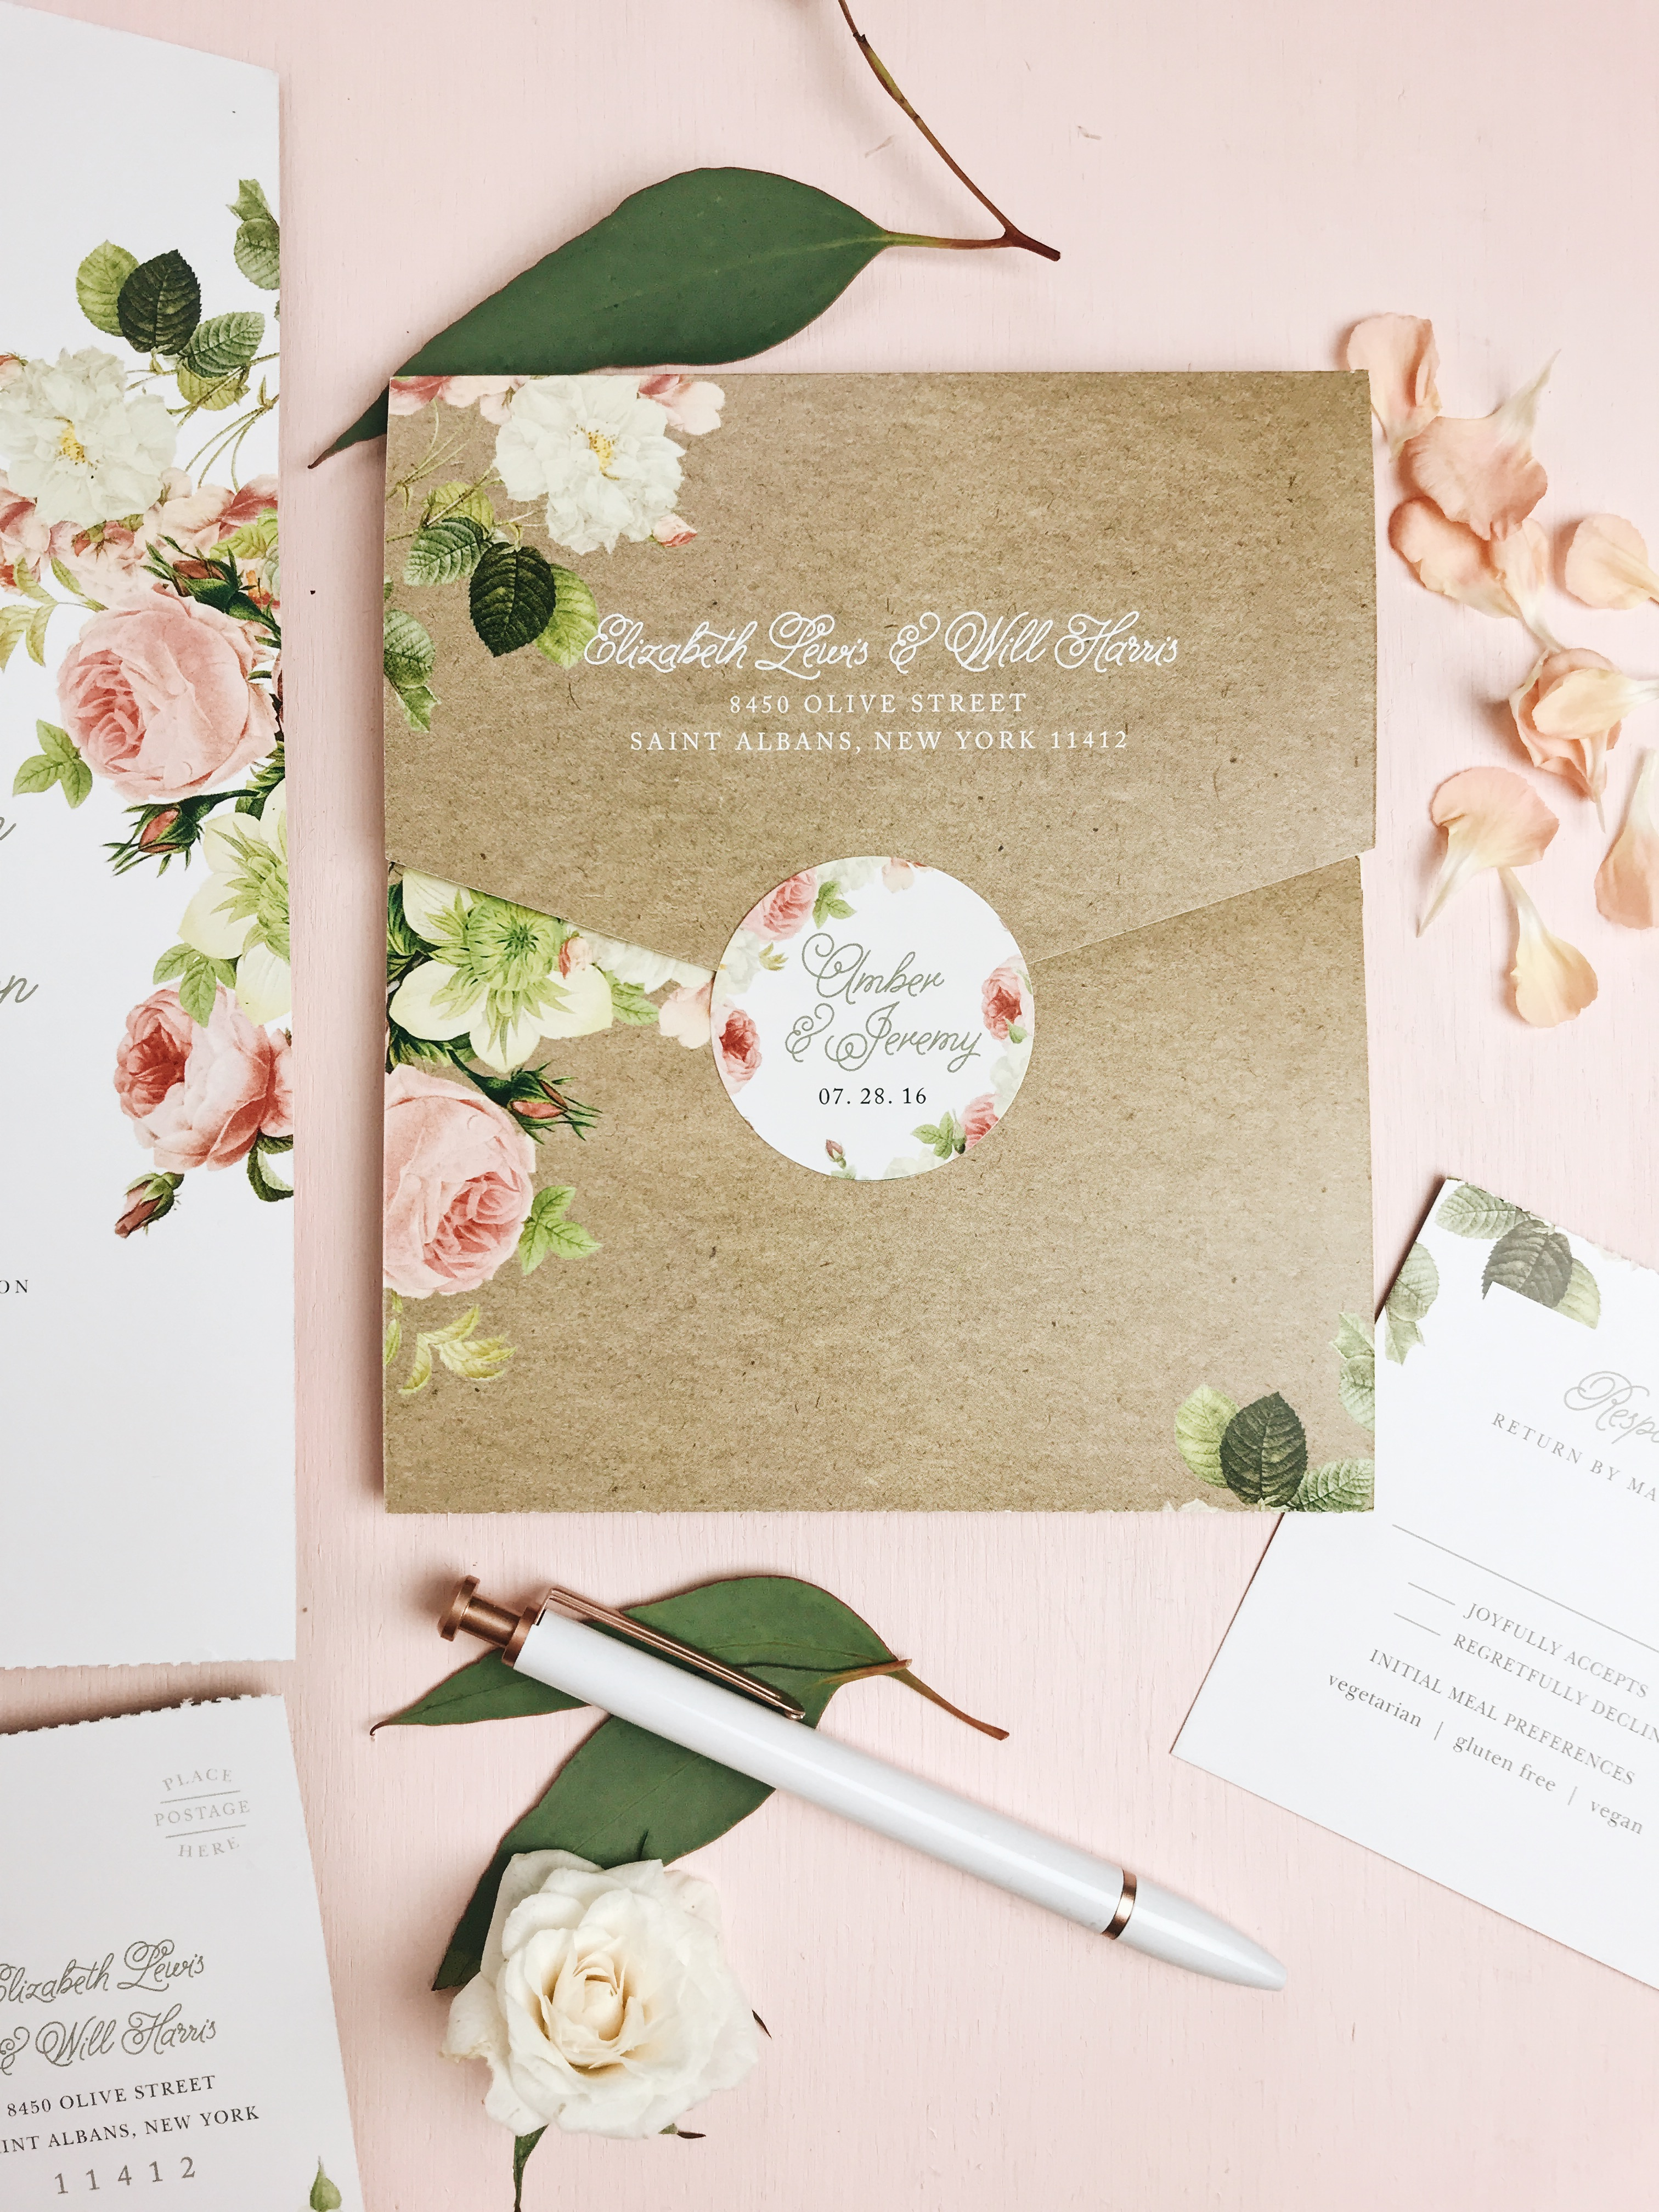 Basic Invite Modern Wedding Stationery Examples Free Samples Instant Previews Fully Customizable